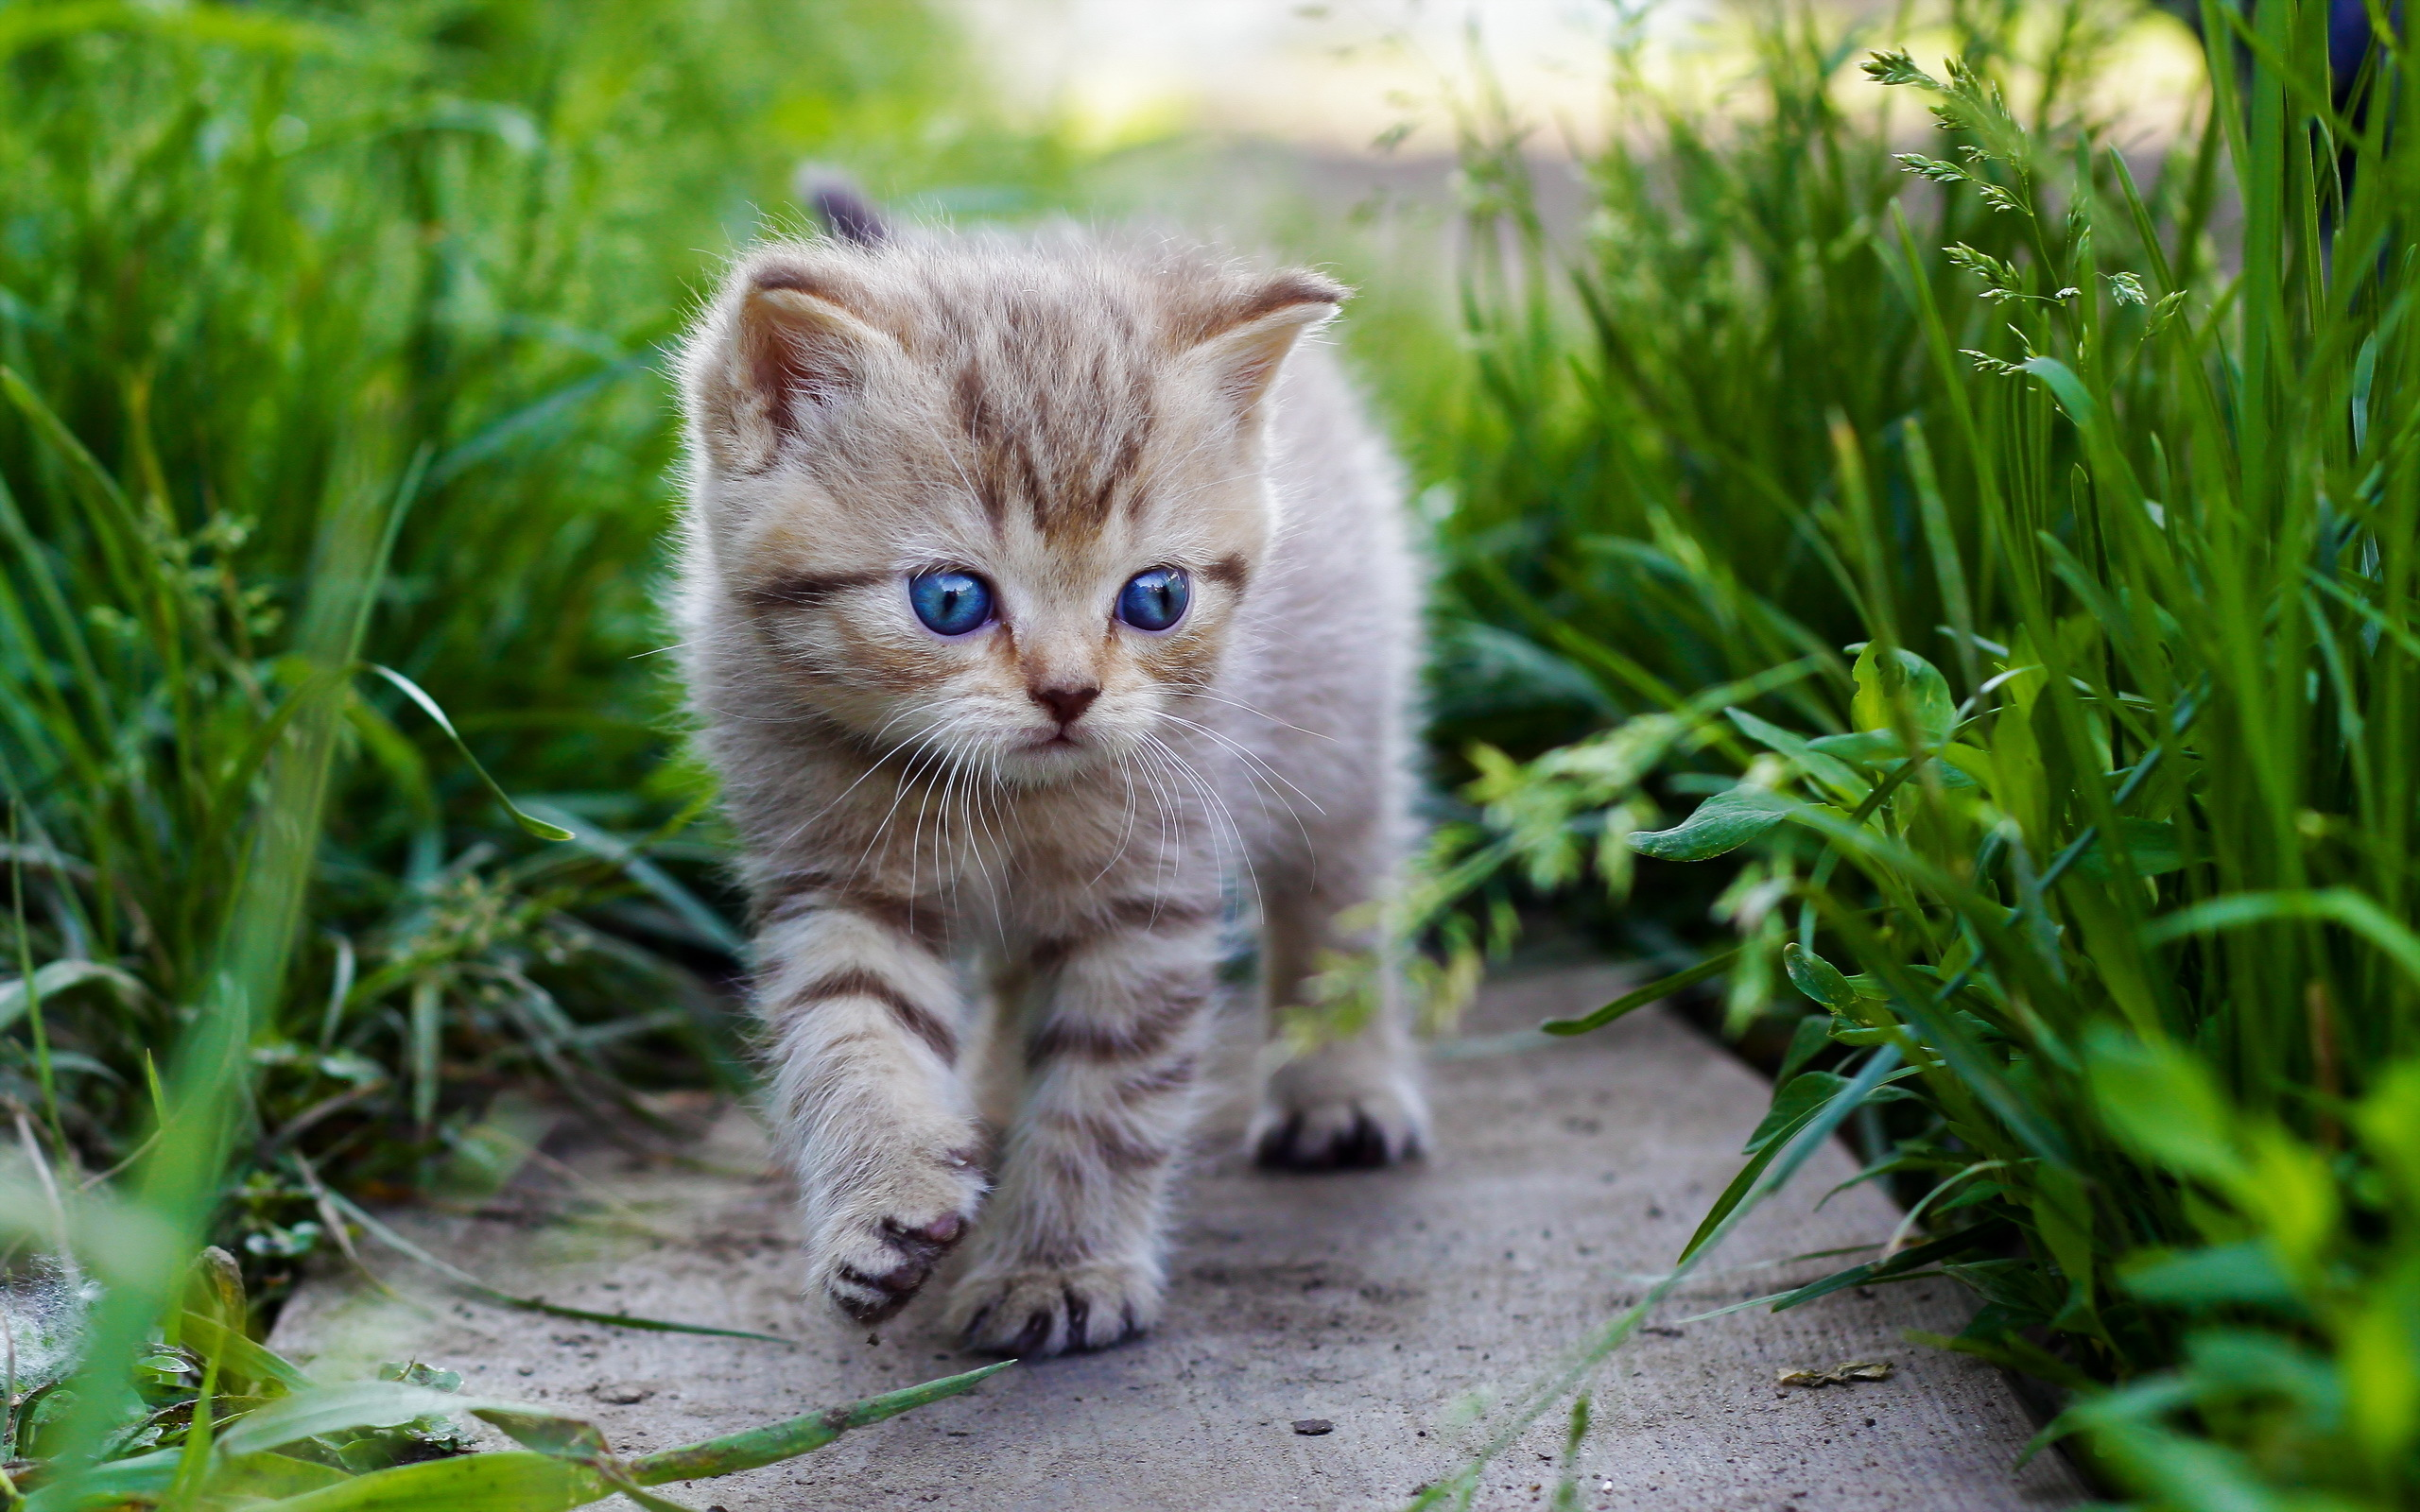 Cute baby cats hd wallpaper - Kitten wallpaper hd ...